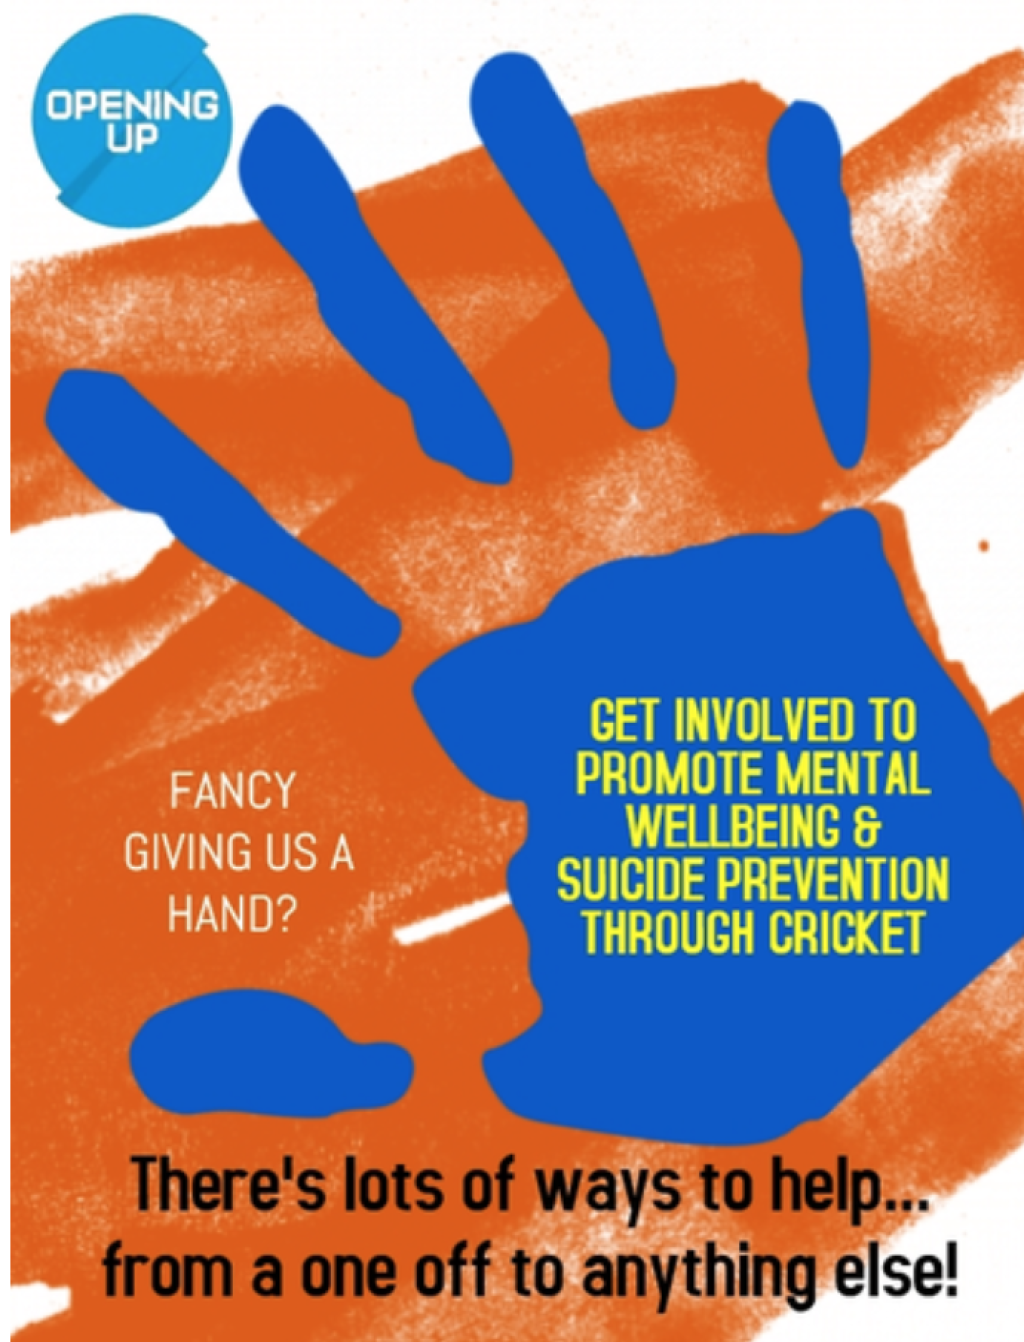 Thursday 6th June Opening Up Cricket promoting mental well being